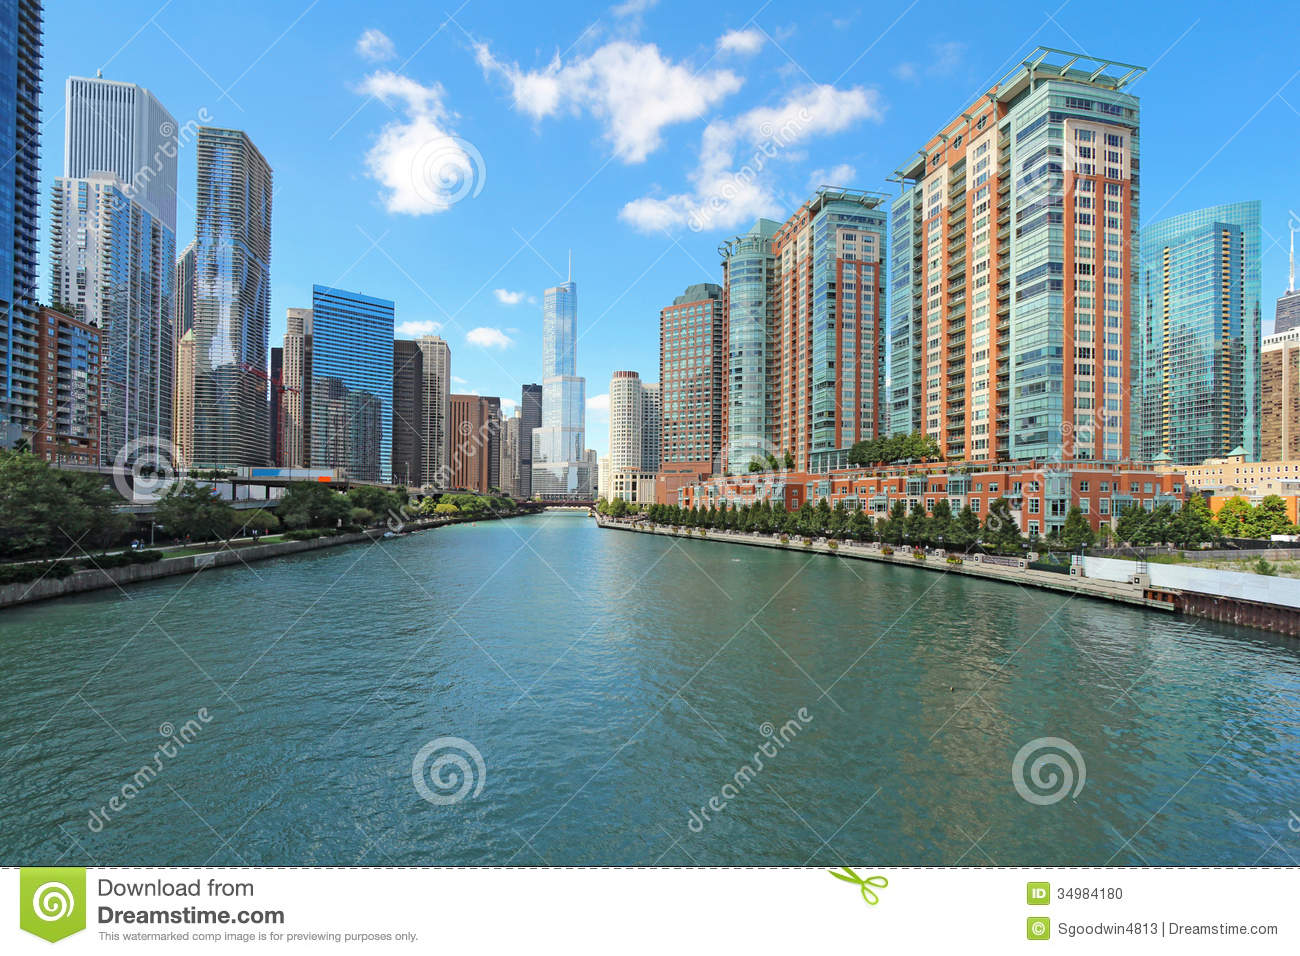 Chicago river clipart.